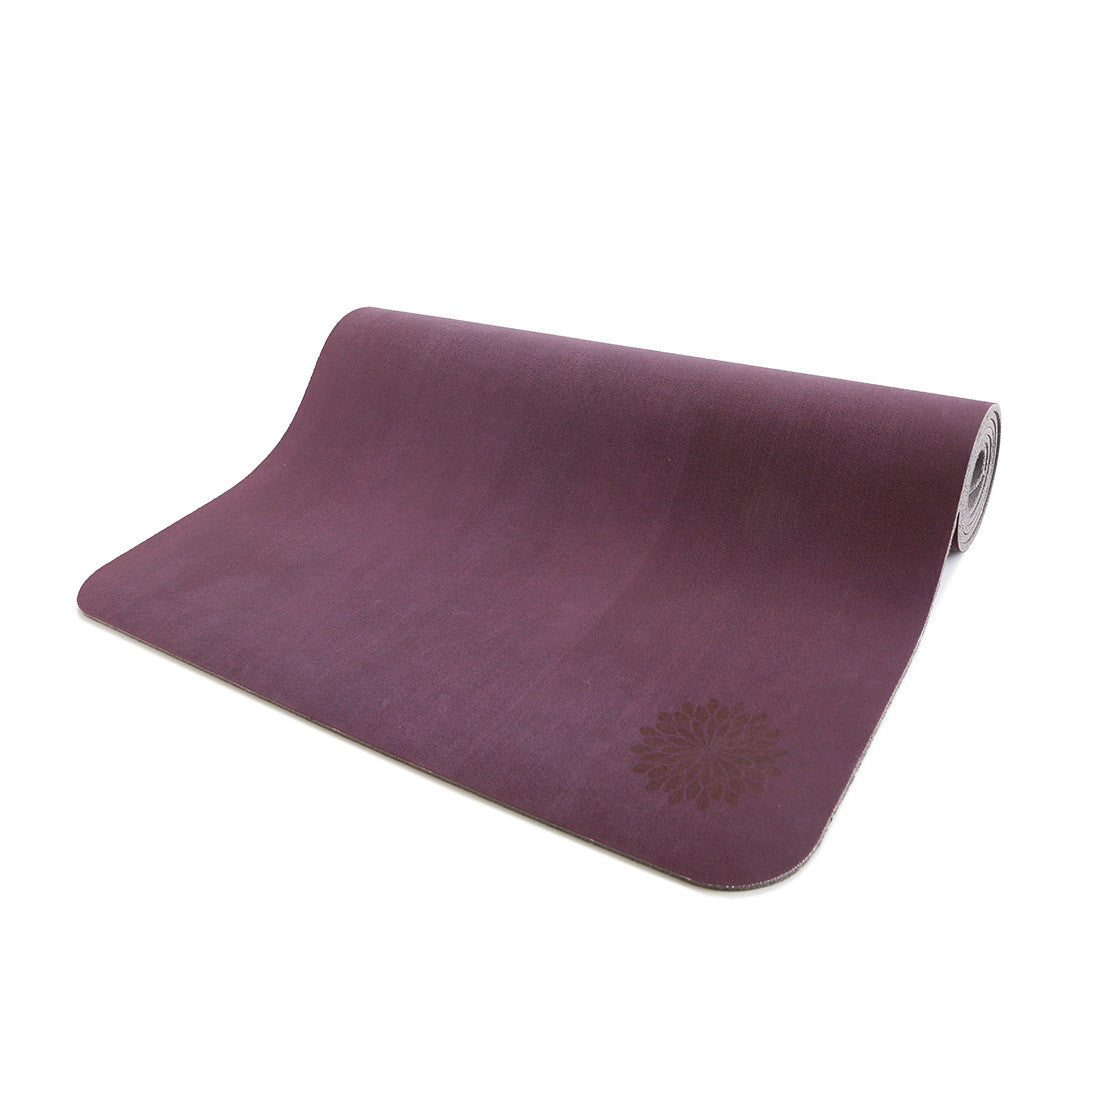 easyoga Premium Natural Rubber Yoga Mat - P7 Dark Purple / Light Purple